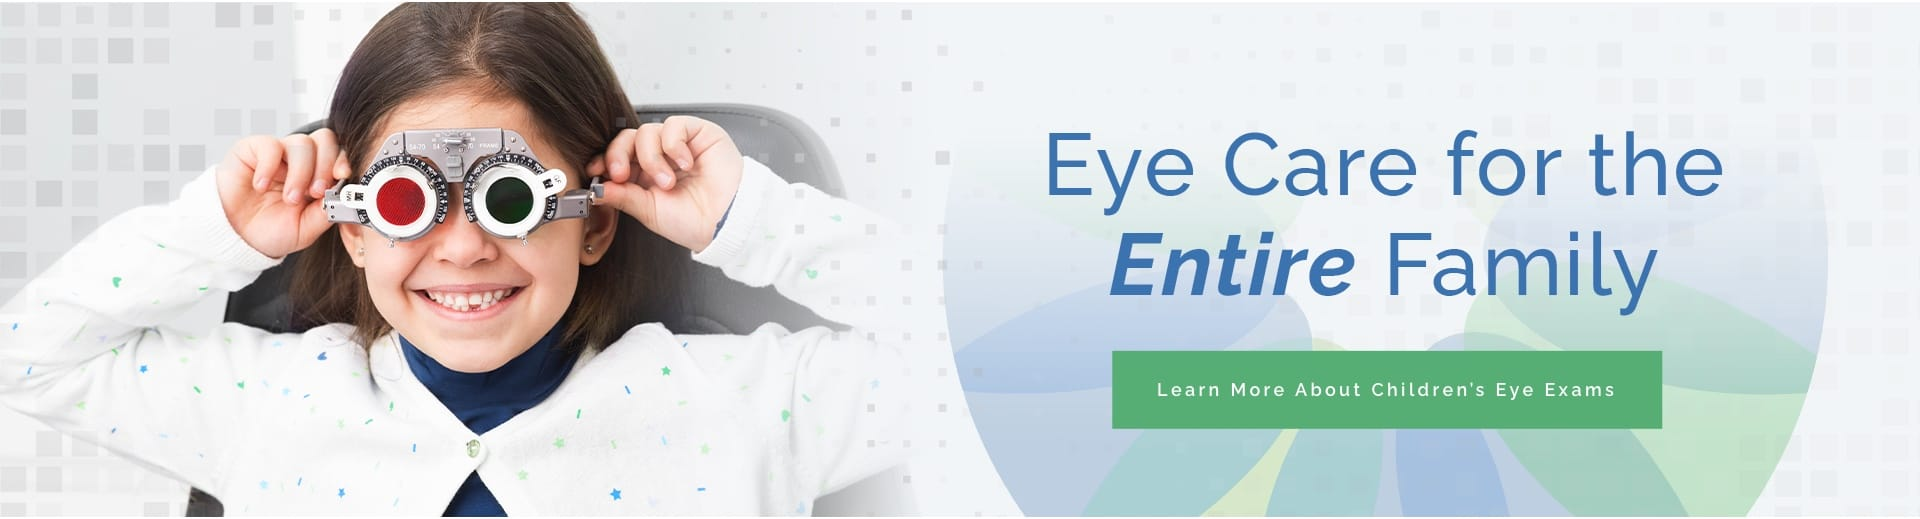 Learn About Children's Eye Exams